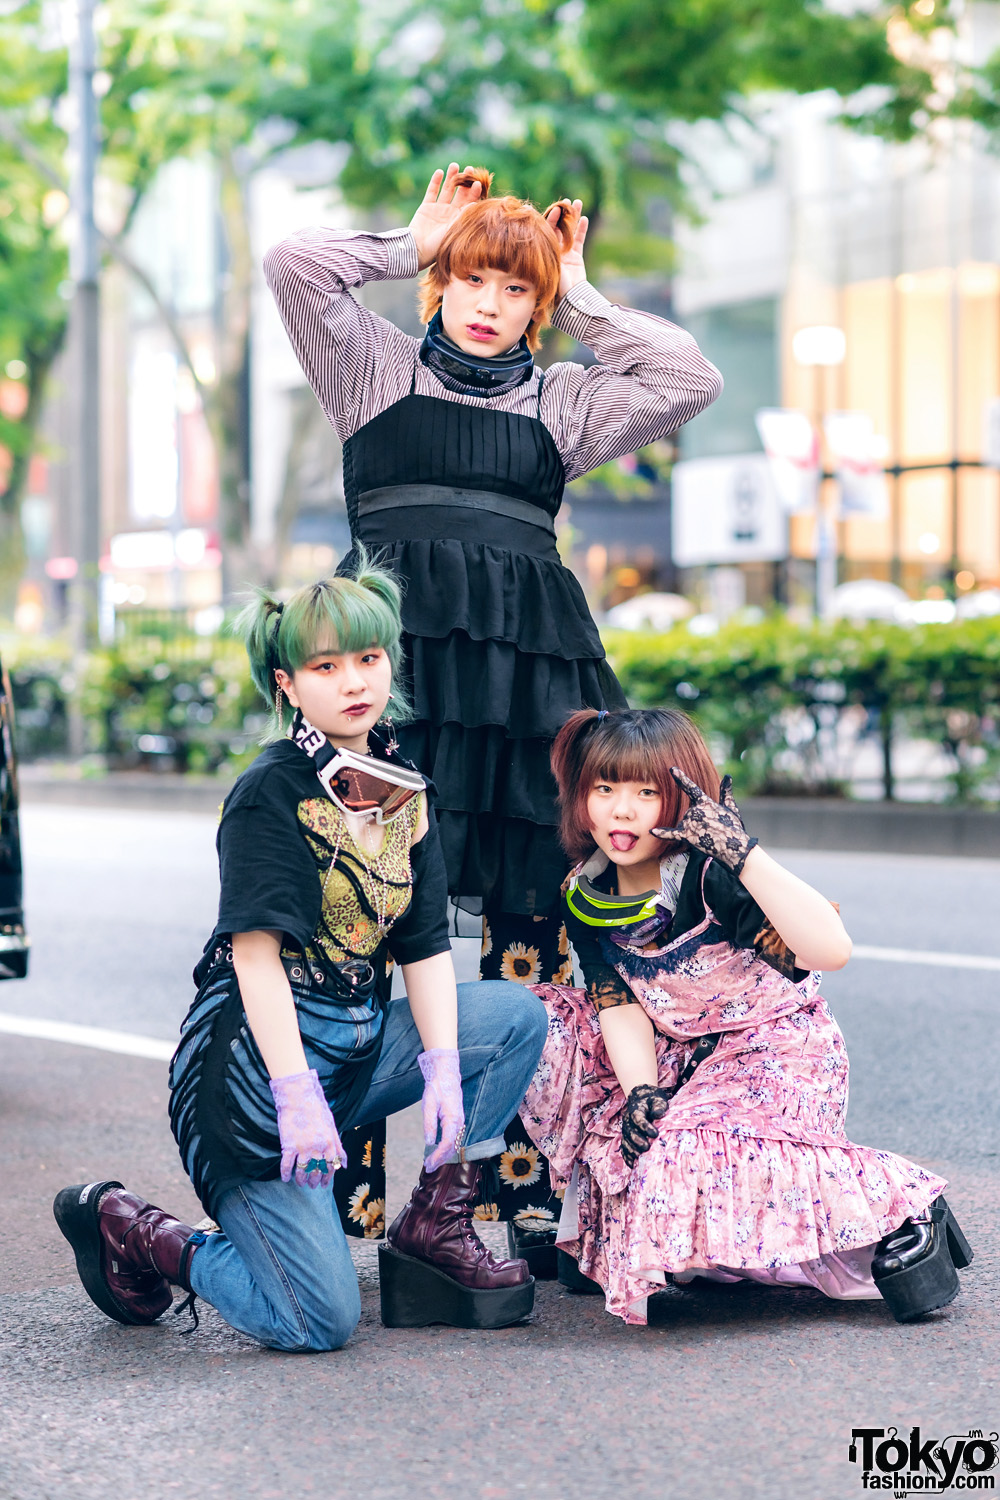 Harajuku Street Styles w/ Goggles, Lace Gloves, Remake & Vintage Fashion, Yosuke, Nondisclothes & Bubbles